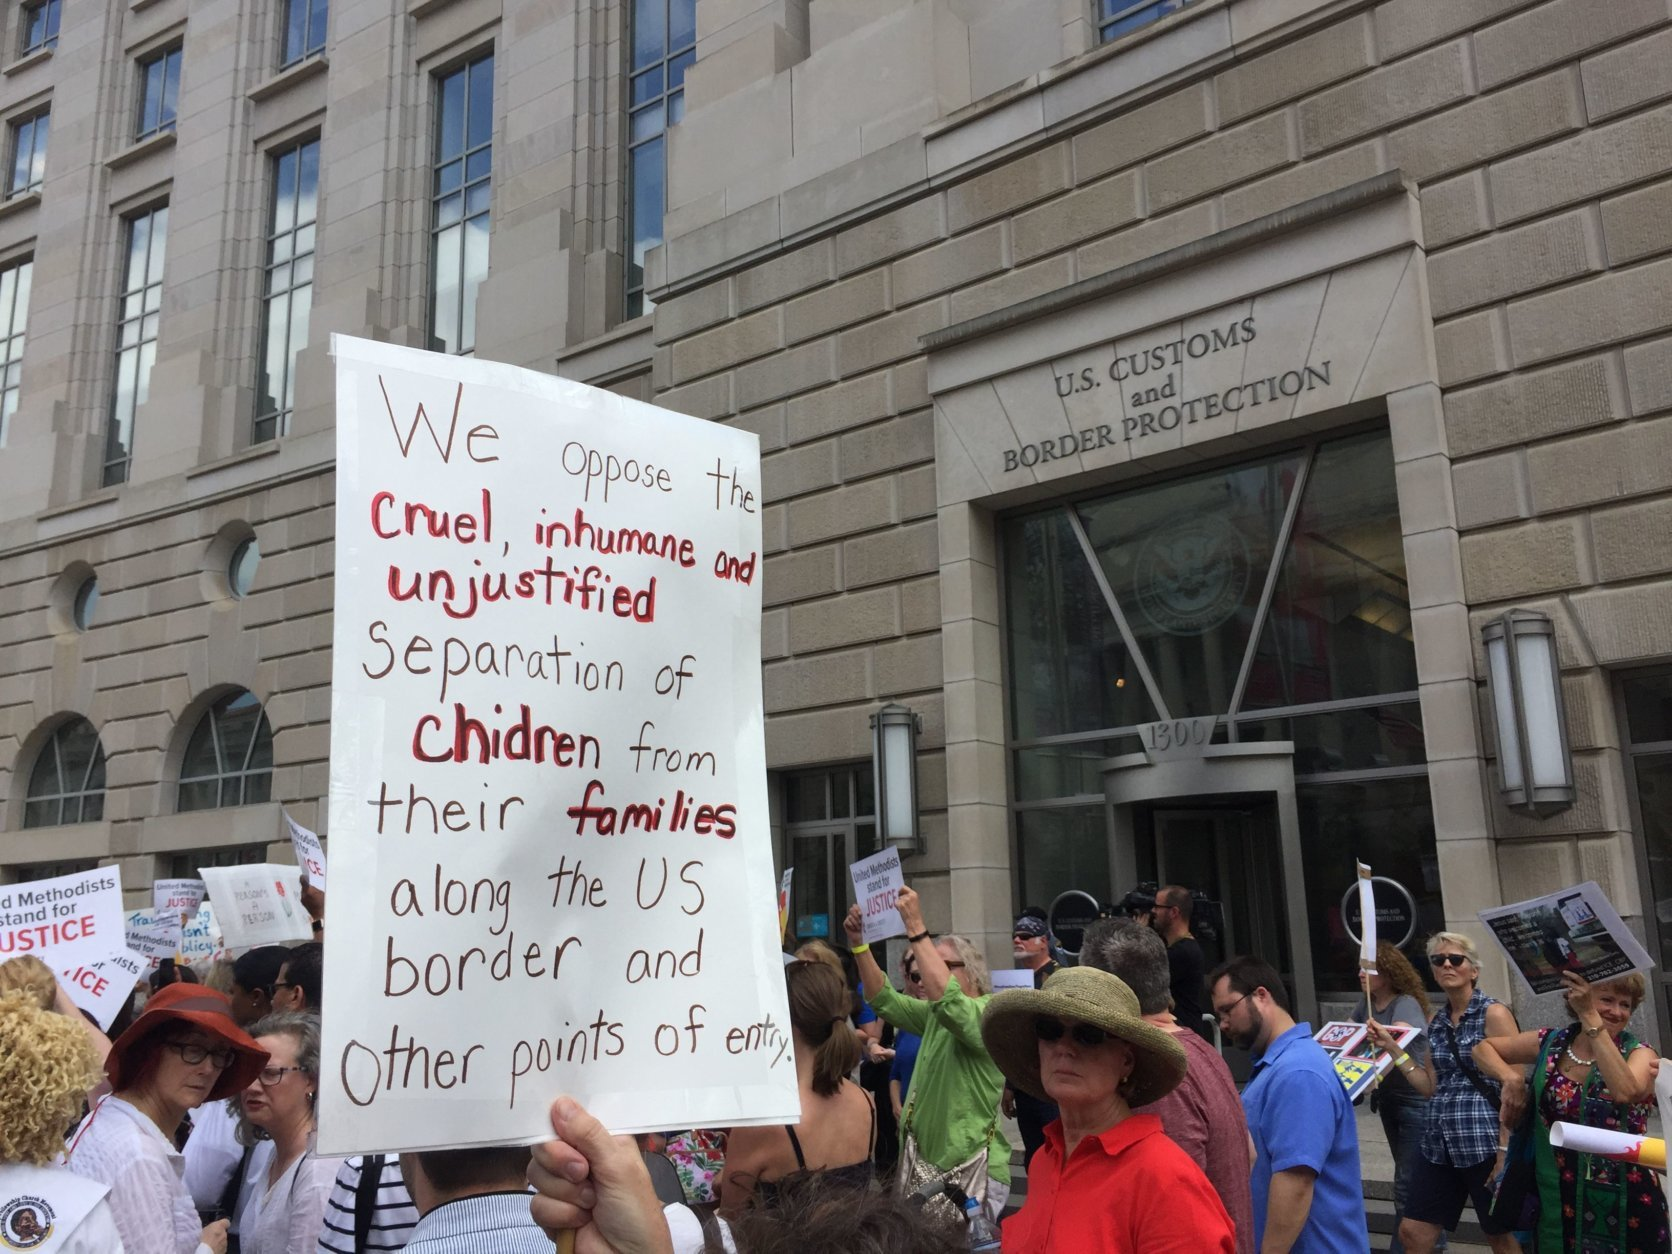 A group of women clergy members  gathered in D.C. to protest the separation of parents and children at the U.S border. (Photo by Don Squires)